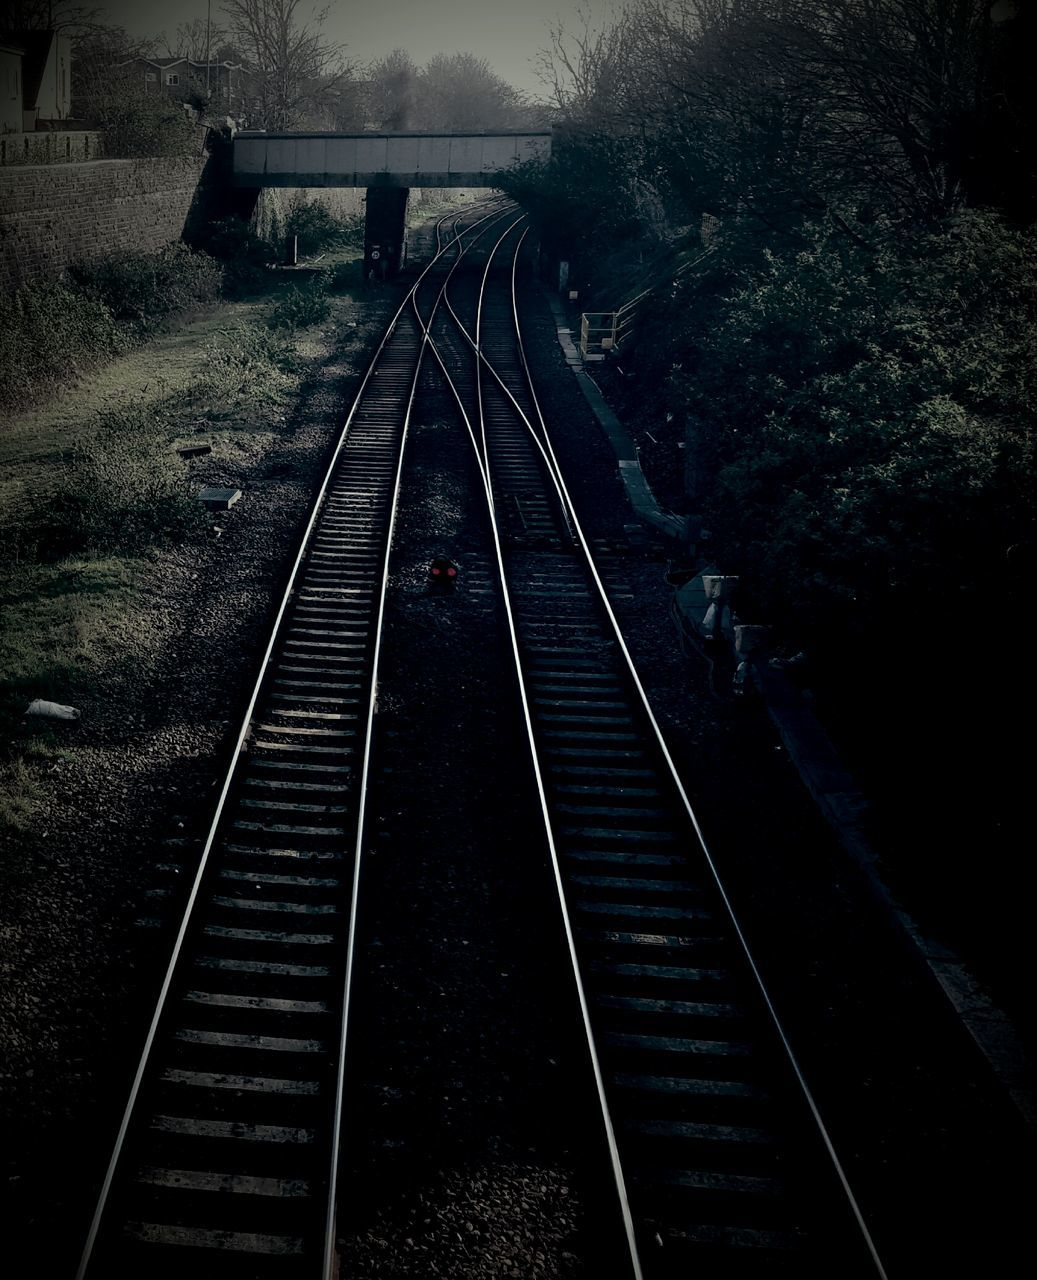 railroad track, transportation, rail transportation, no people, high angle view, the way forward, day, outdoors